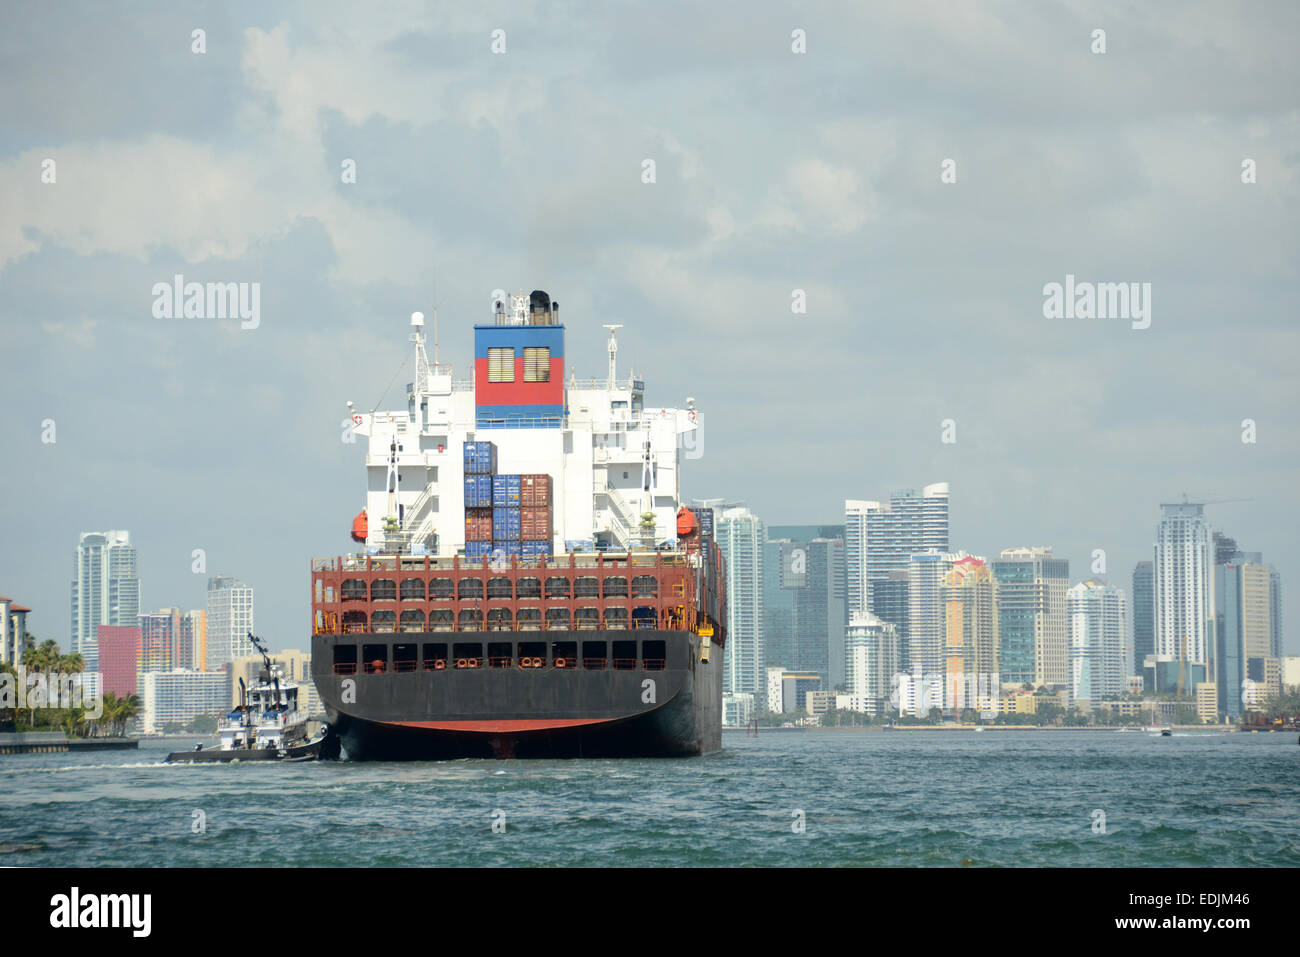 Heavy container cargo ship enters the port of Miami, Florida - Stock Image